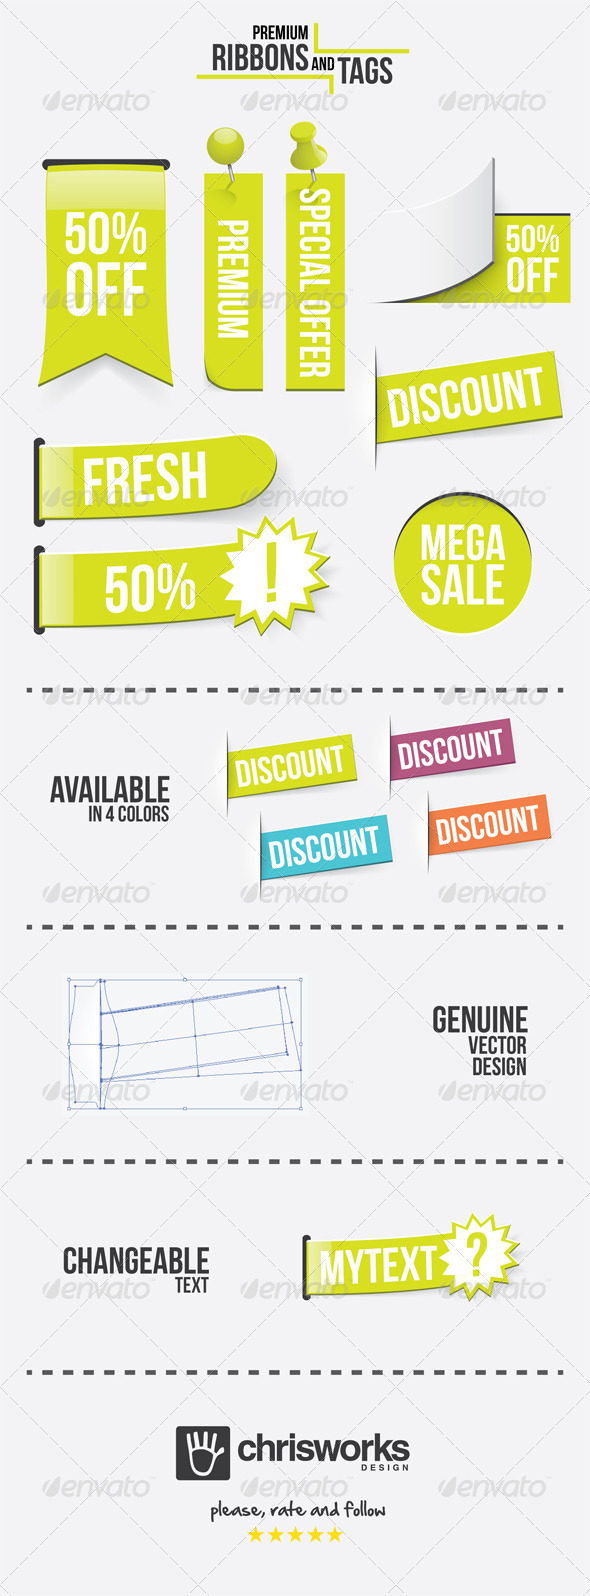 GraphicRiver Premium Ribbons and Tags 5736506